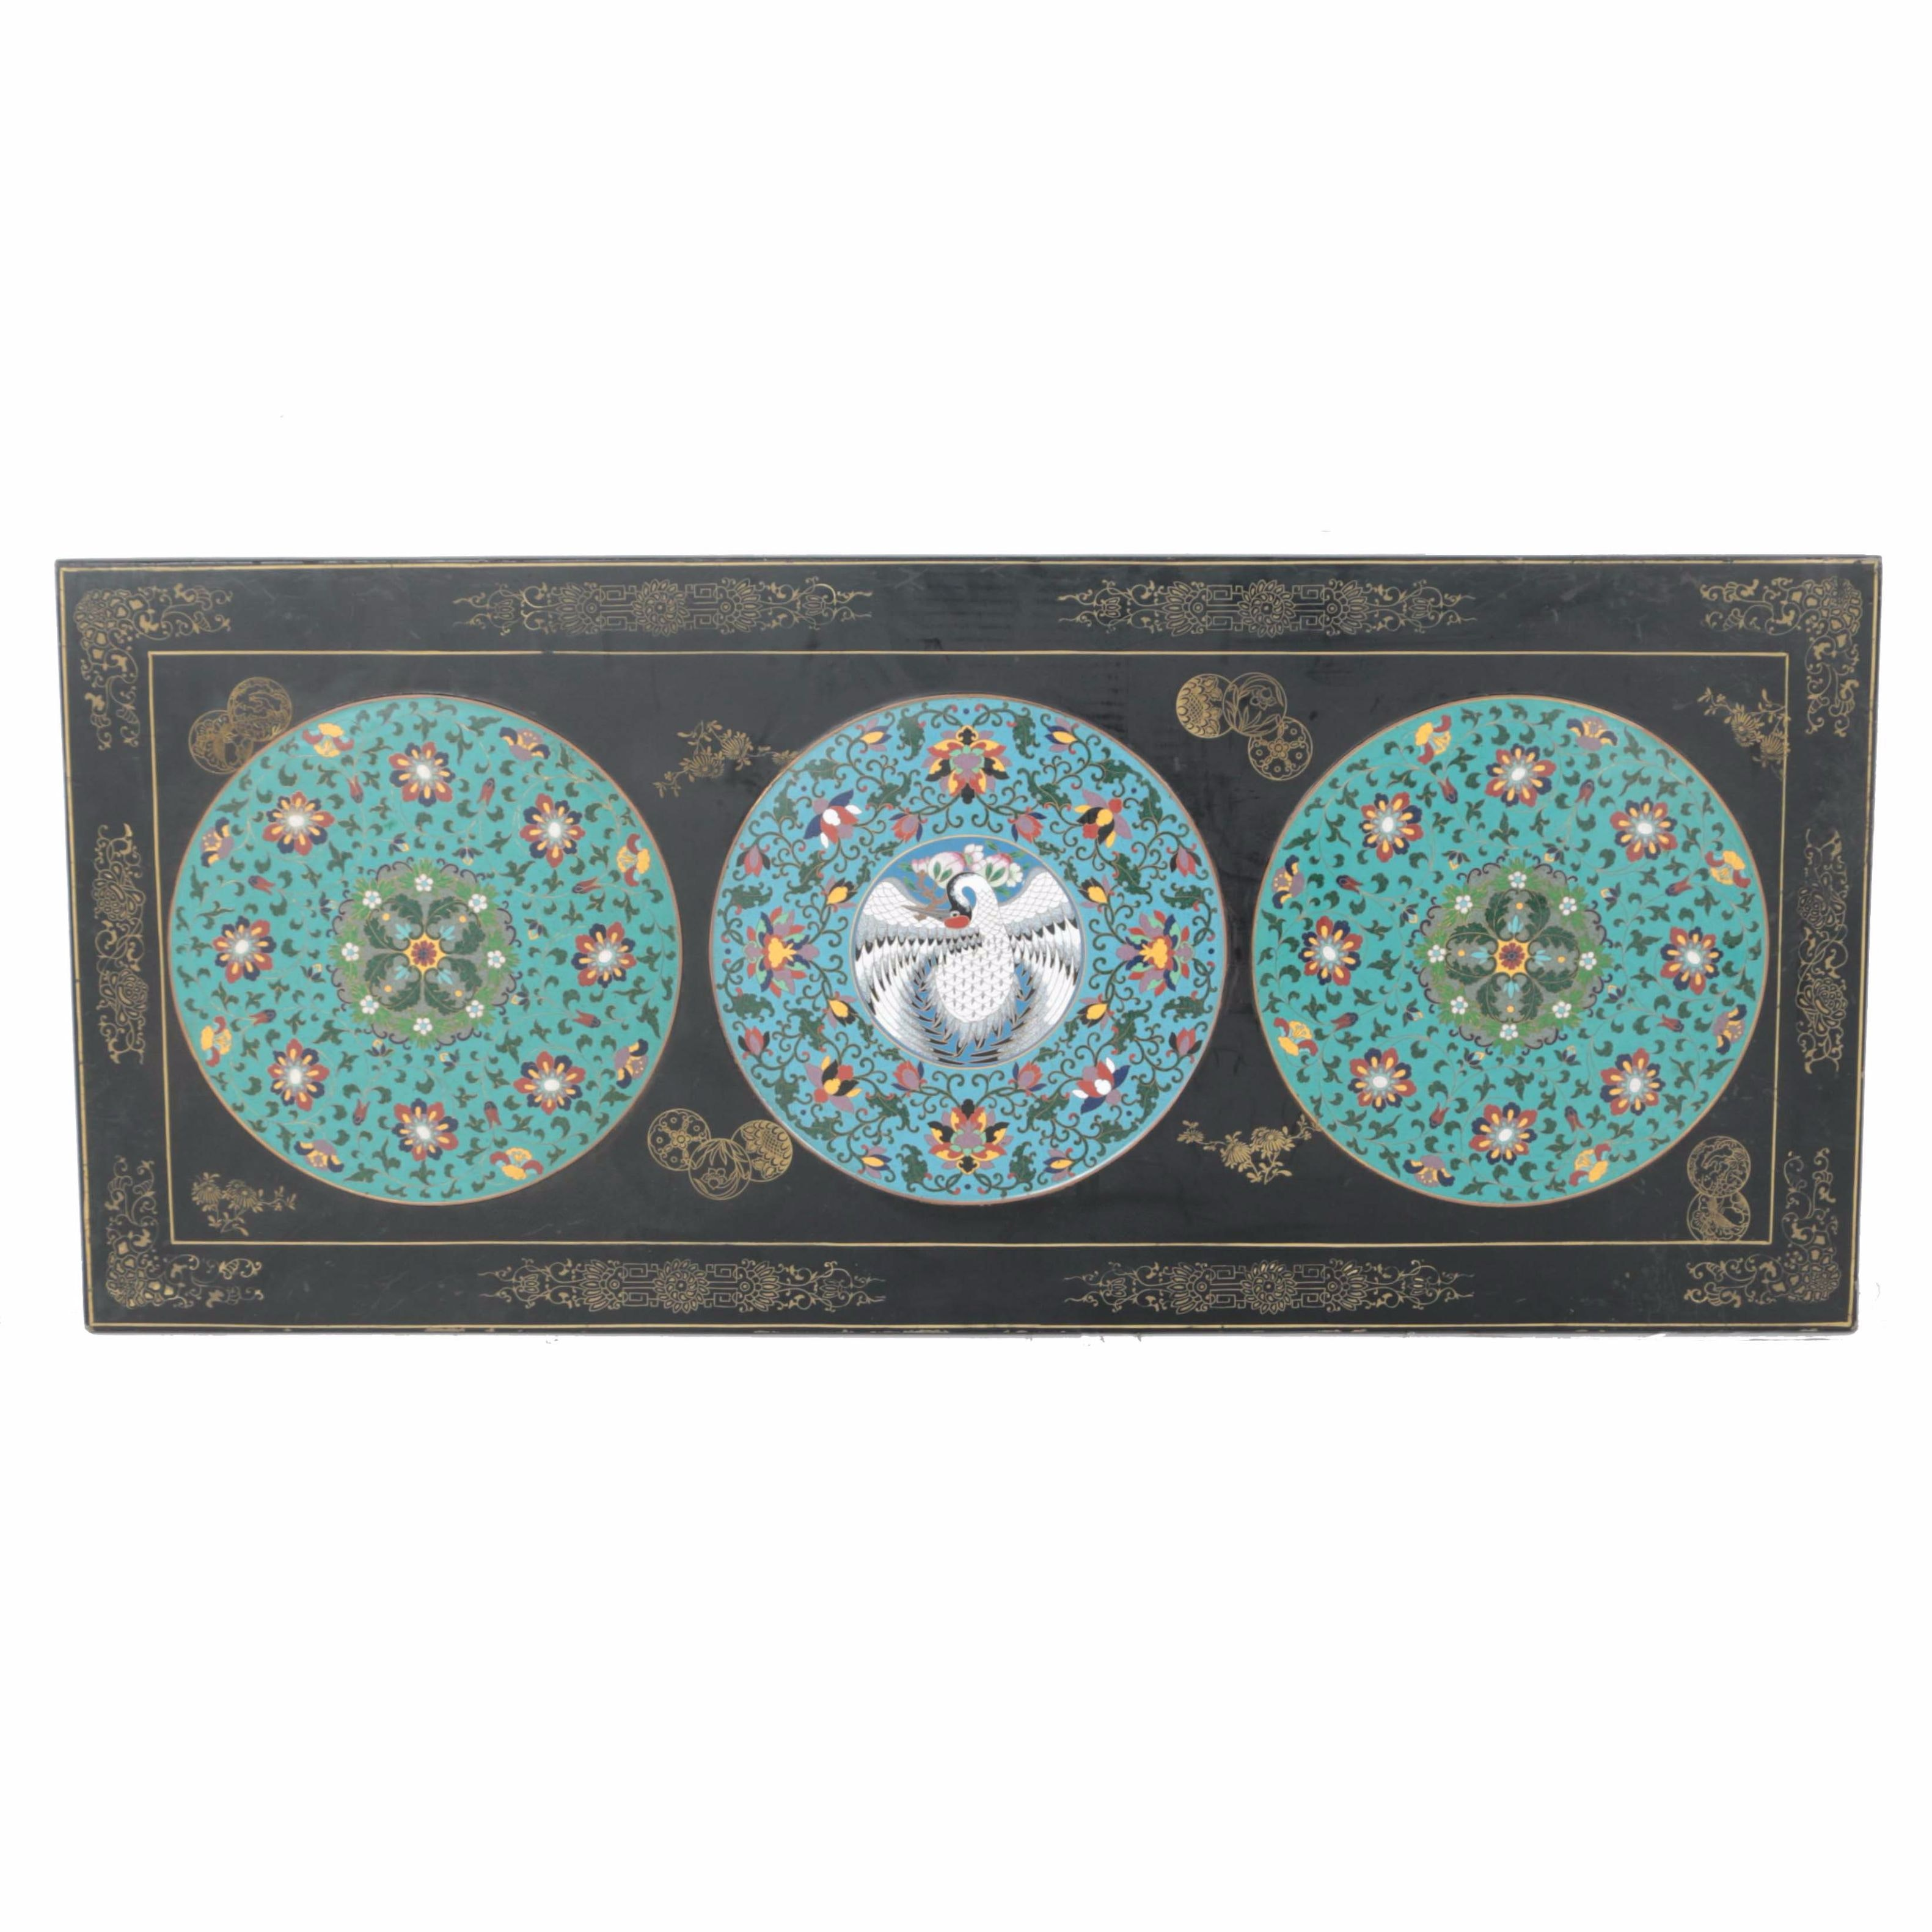 Black Lacquered Panel with Enamelled Medallions